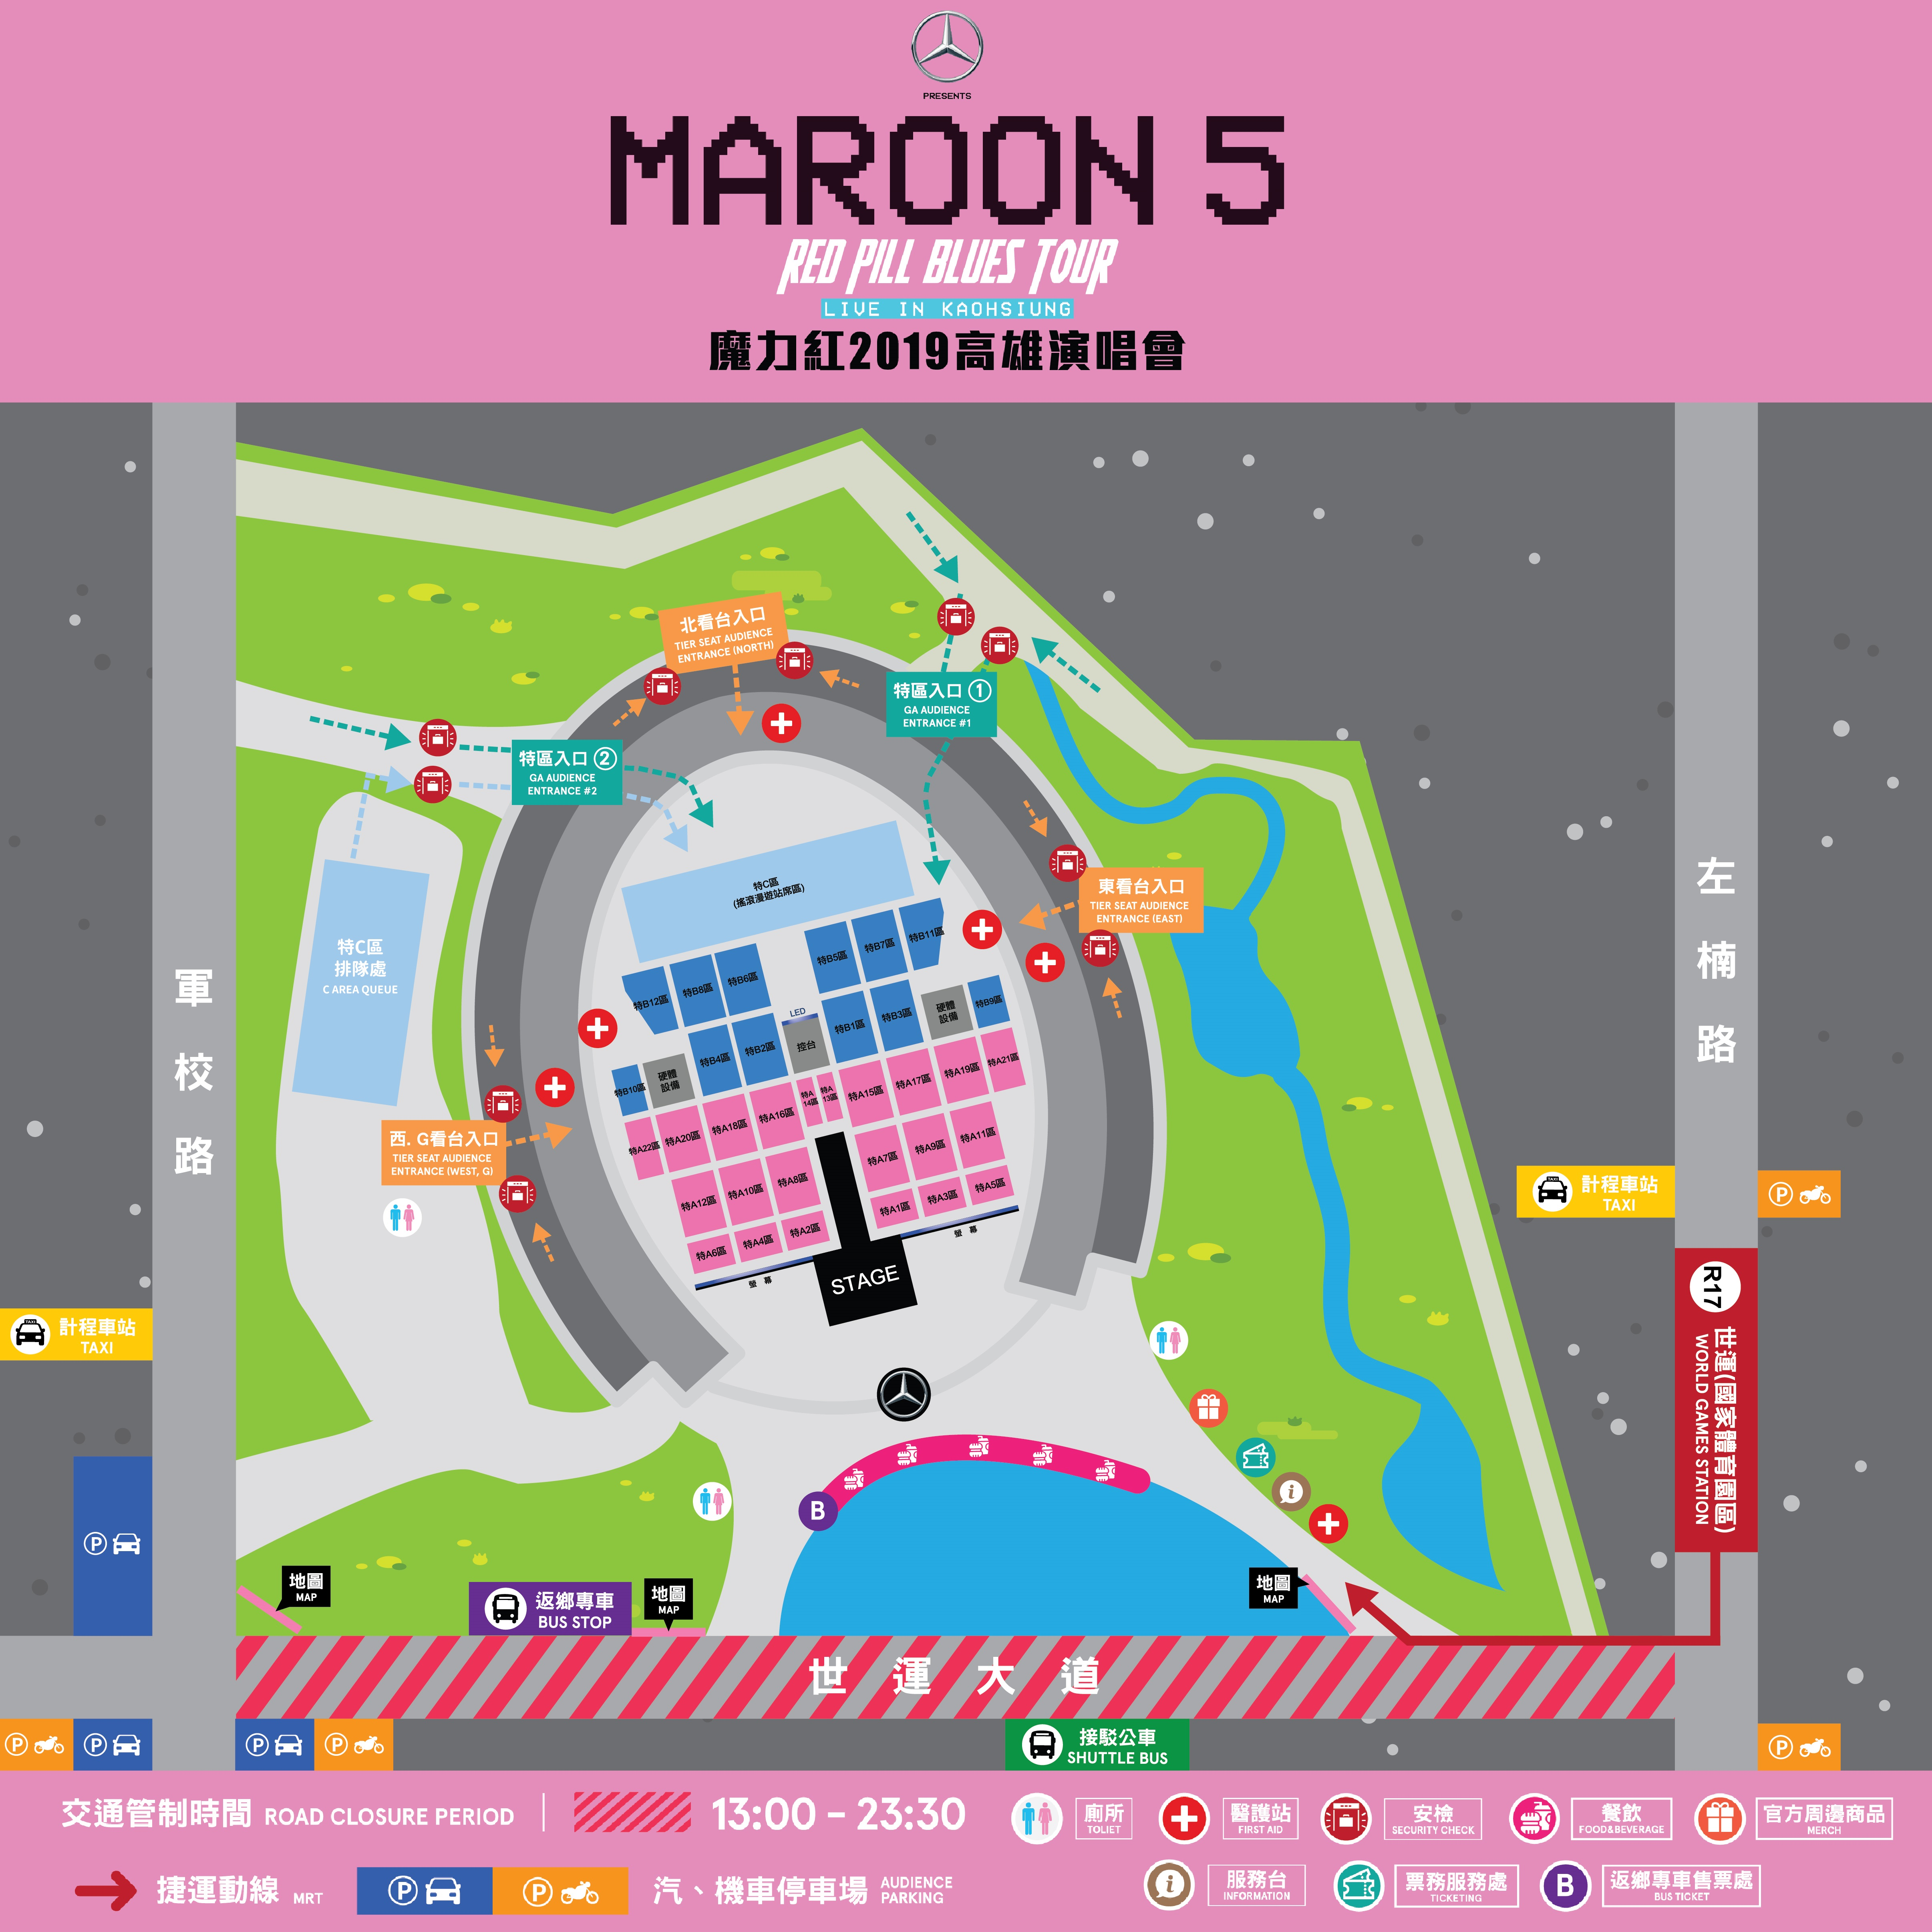 MAROON 5 RED PILL BLUES TOUR LIVE IN KAOHSIUNG 魔力紅2019高雄演唱會 - 入場辦法Entry Notice